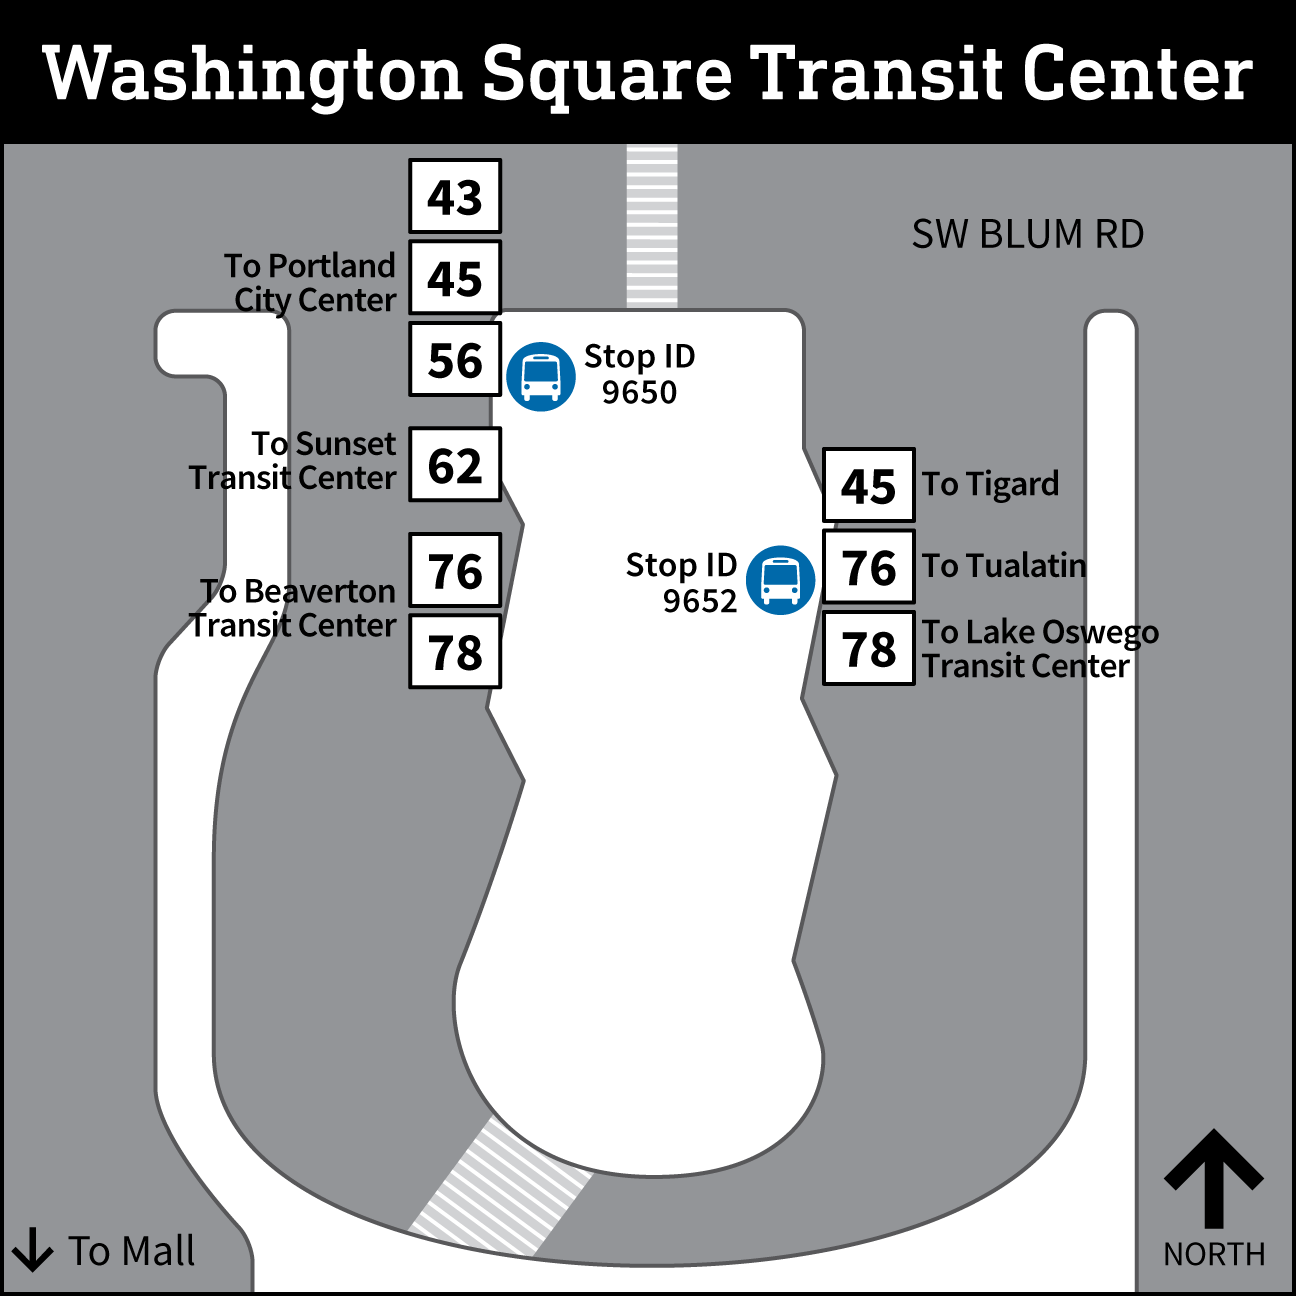 Washington Square Transit Center